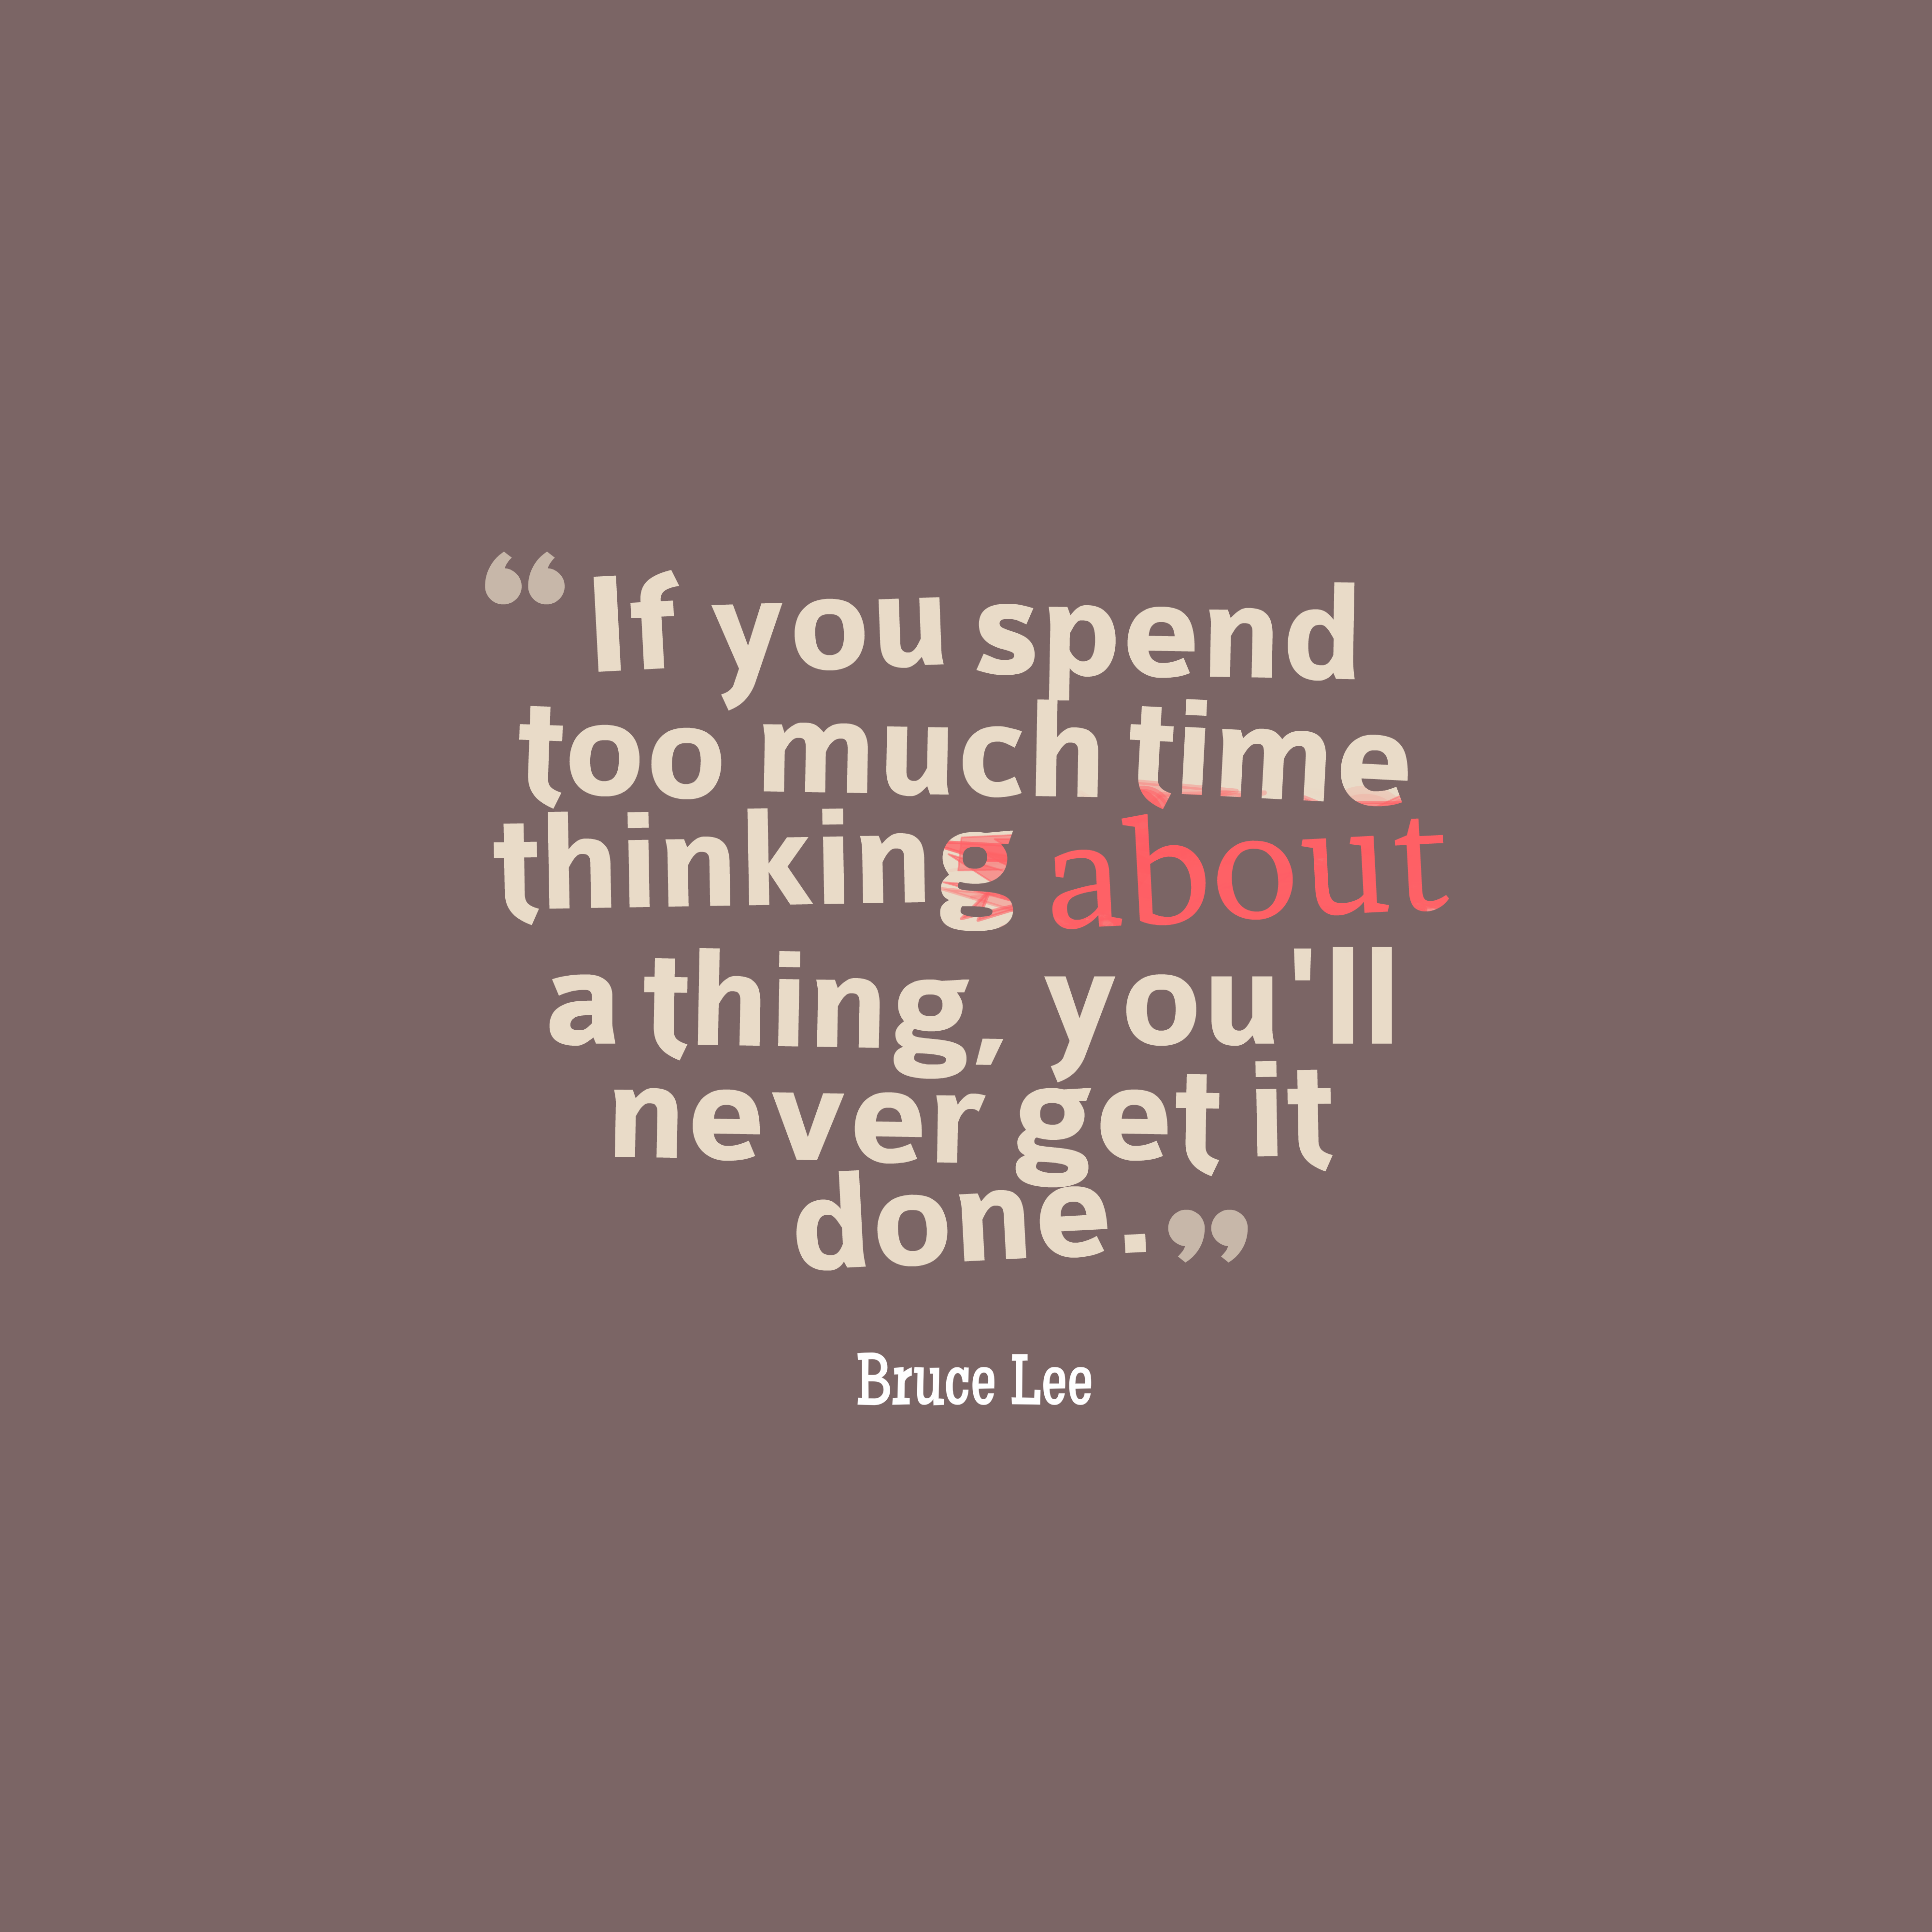 Quotes image of If you spend too much time thinking about a thing, you'll never get it done.